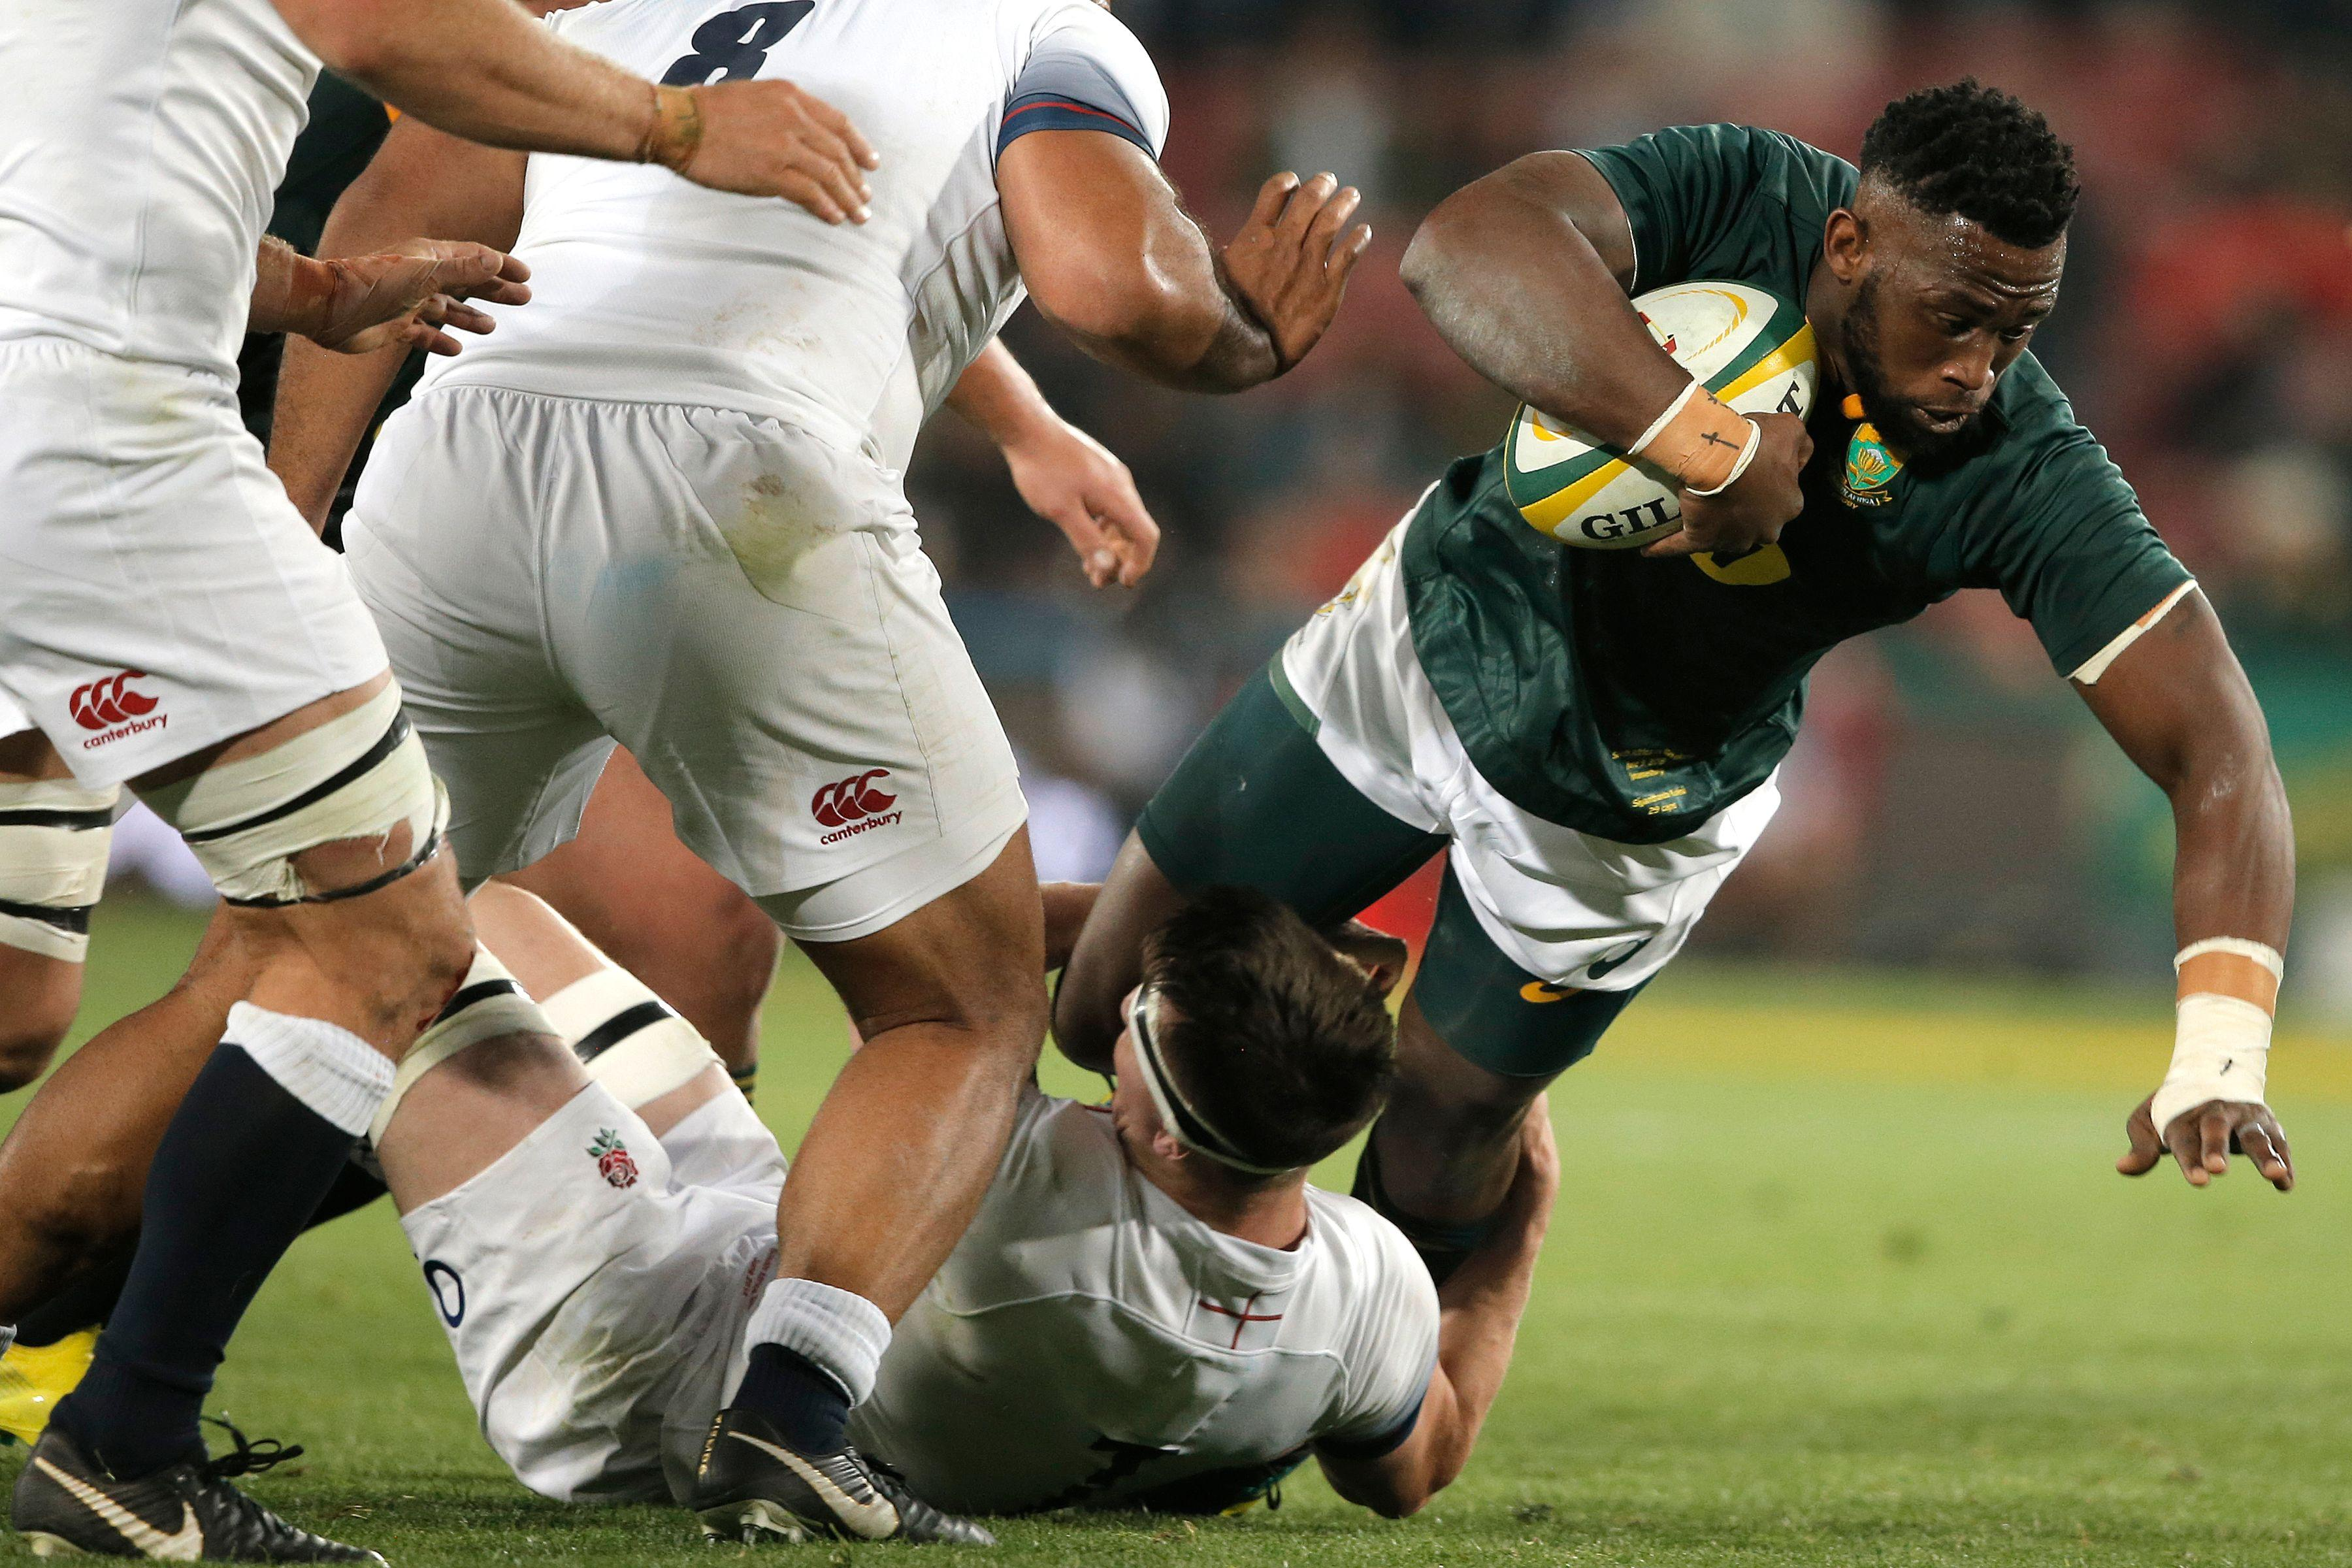 Siya Kolisi was making history as he become the first black player to captain the Springboks